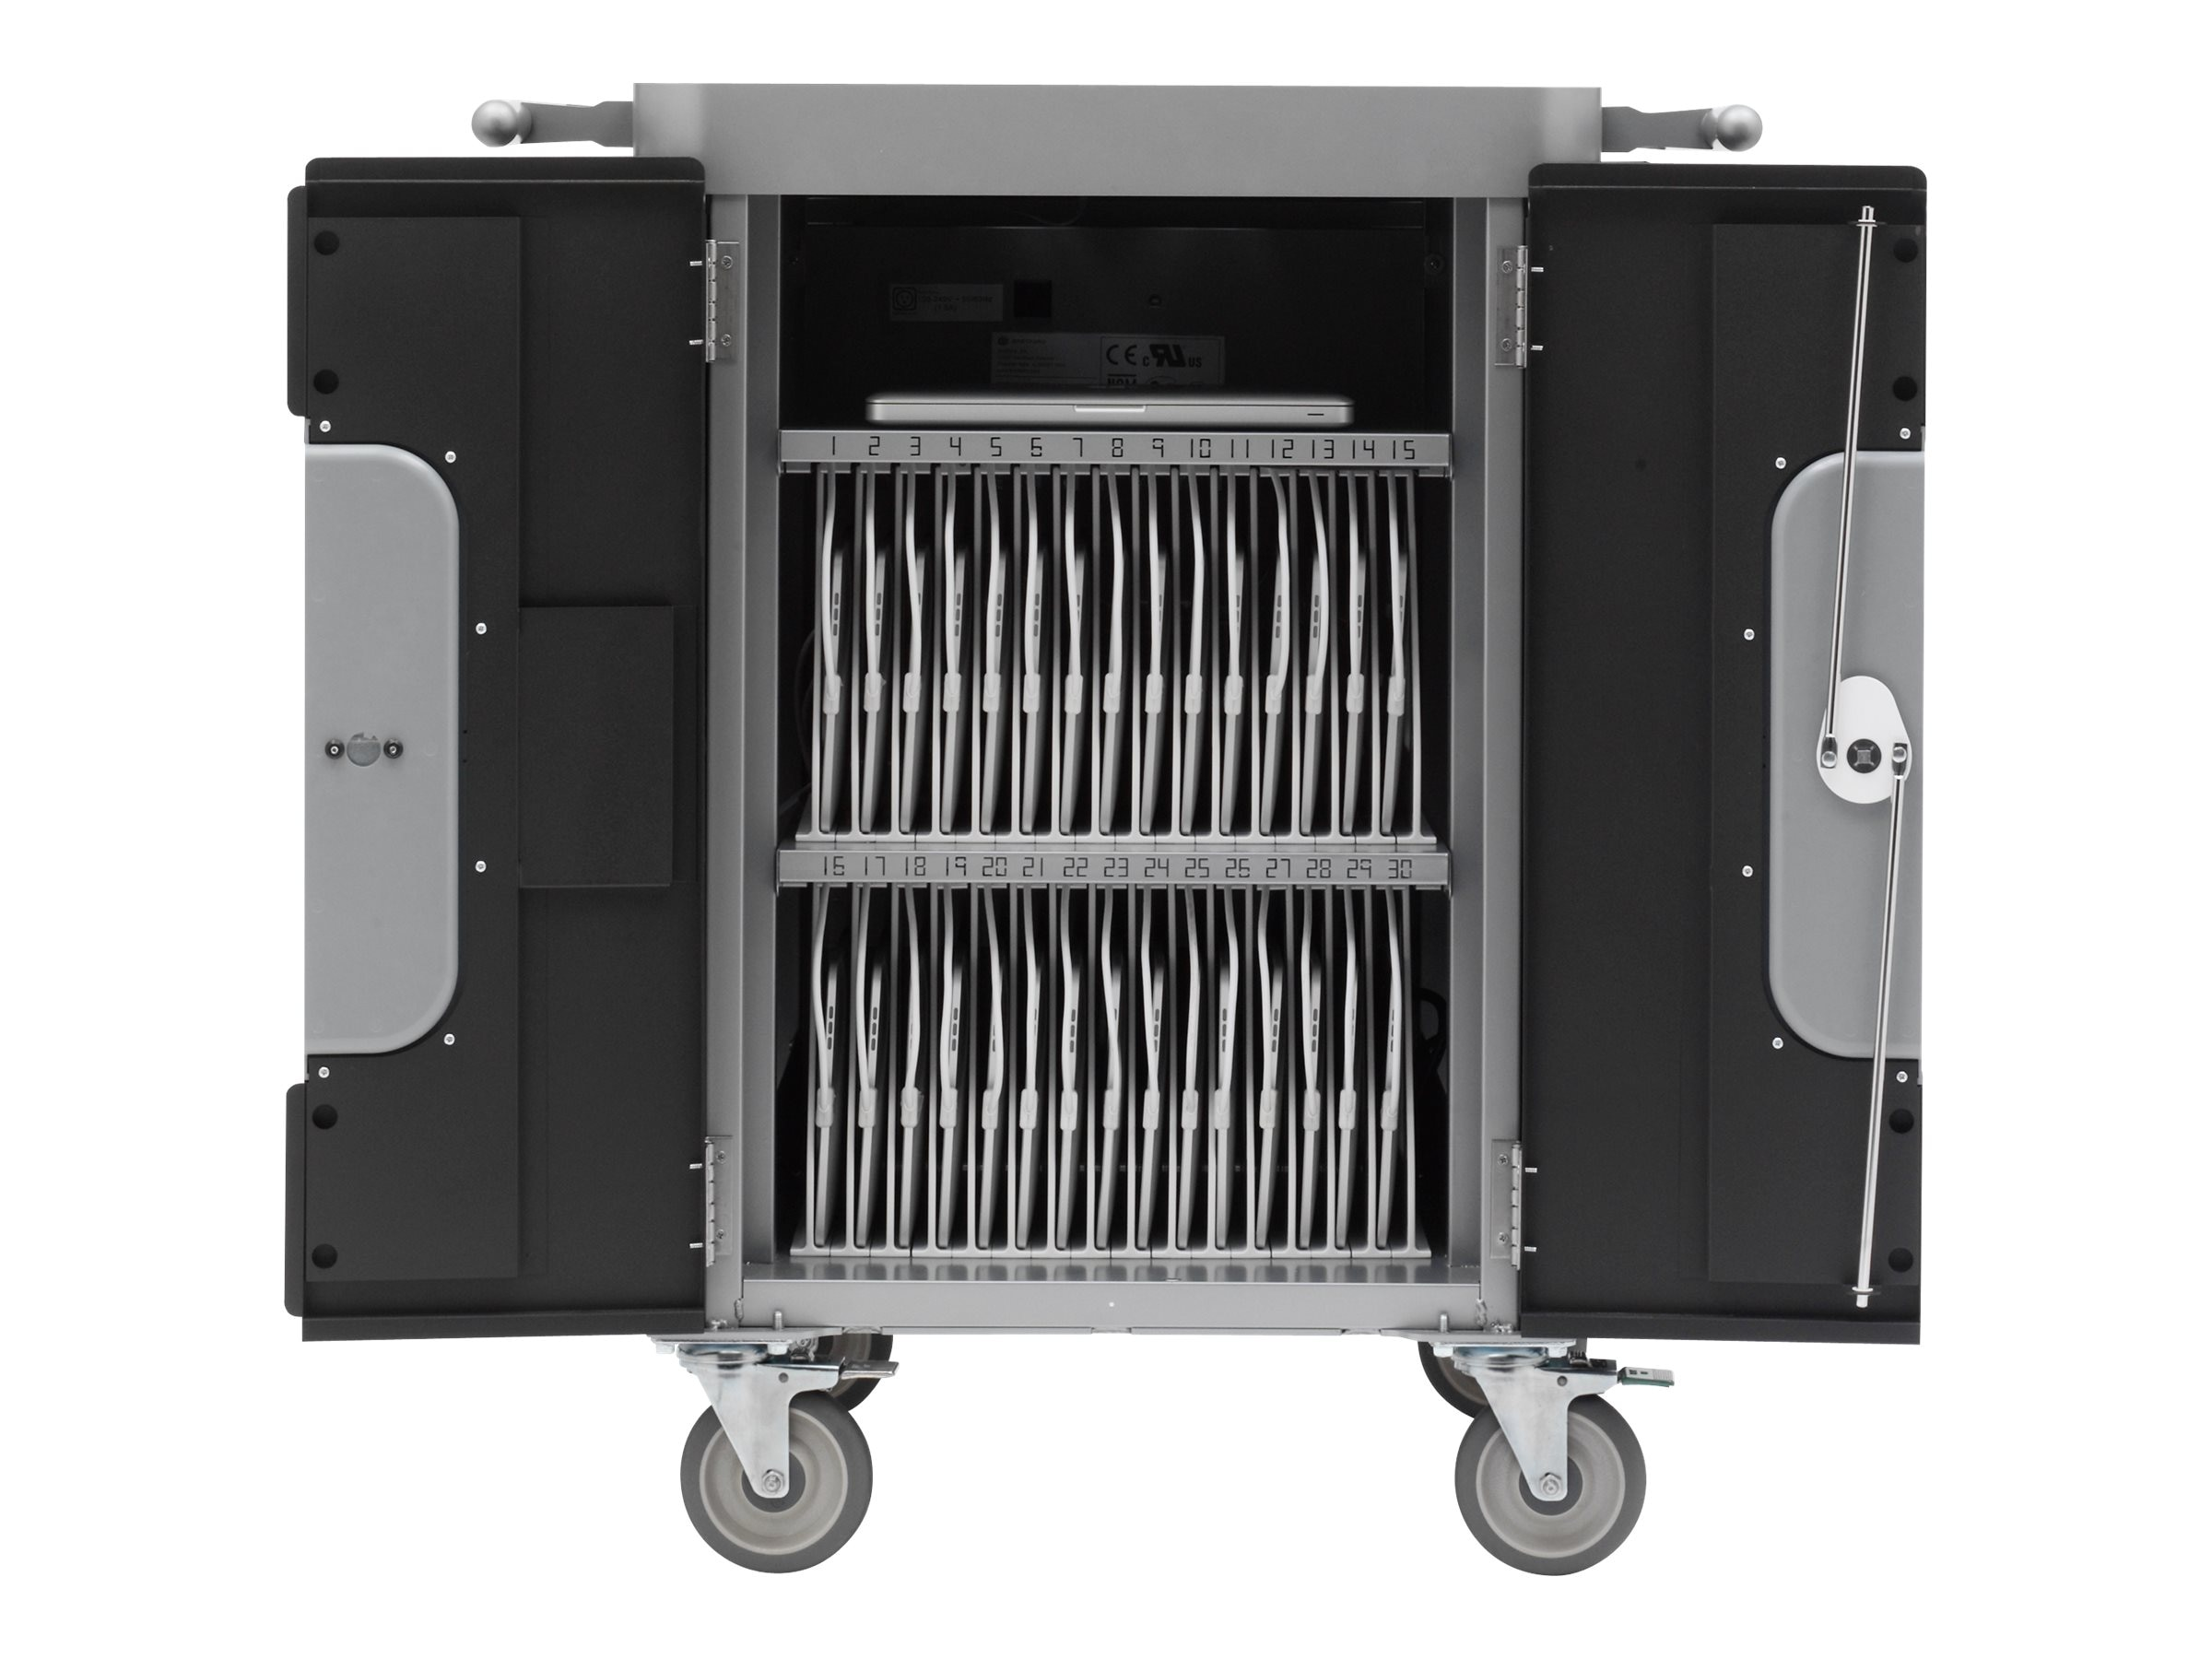 Bretford Manufacturing 30-unit PowerSync Cart for iPad, iPad Mini with Lightning Connector